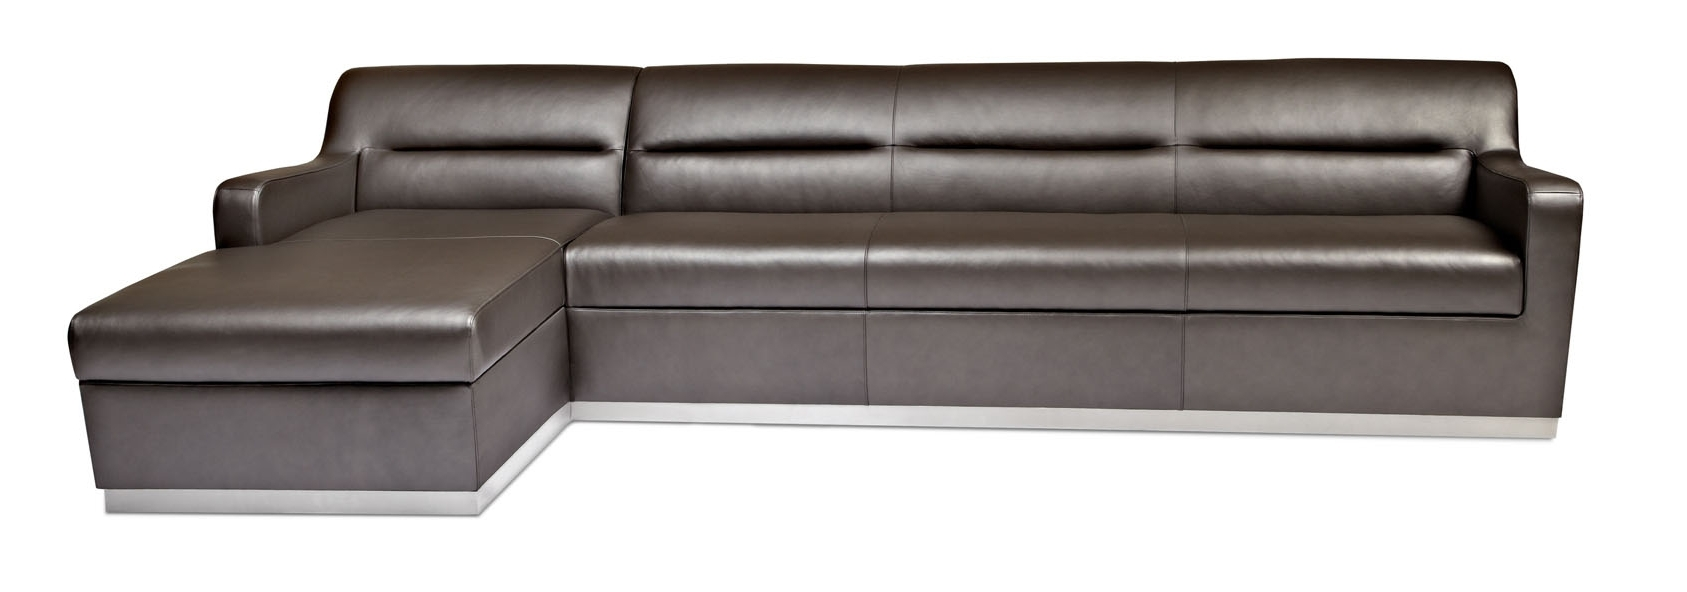 Niagara Sectional Sofas In Most Recently Released American Leather Niagara Sectional Sofa (View 10 of 20)